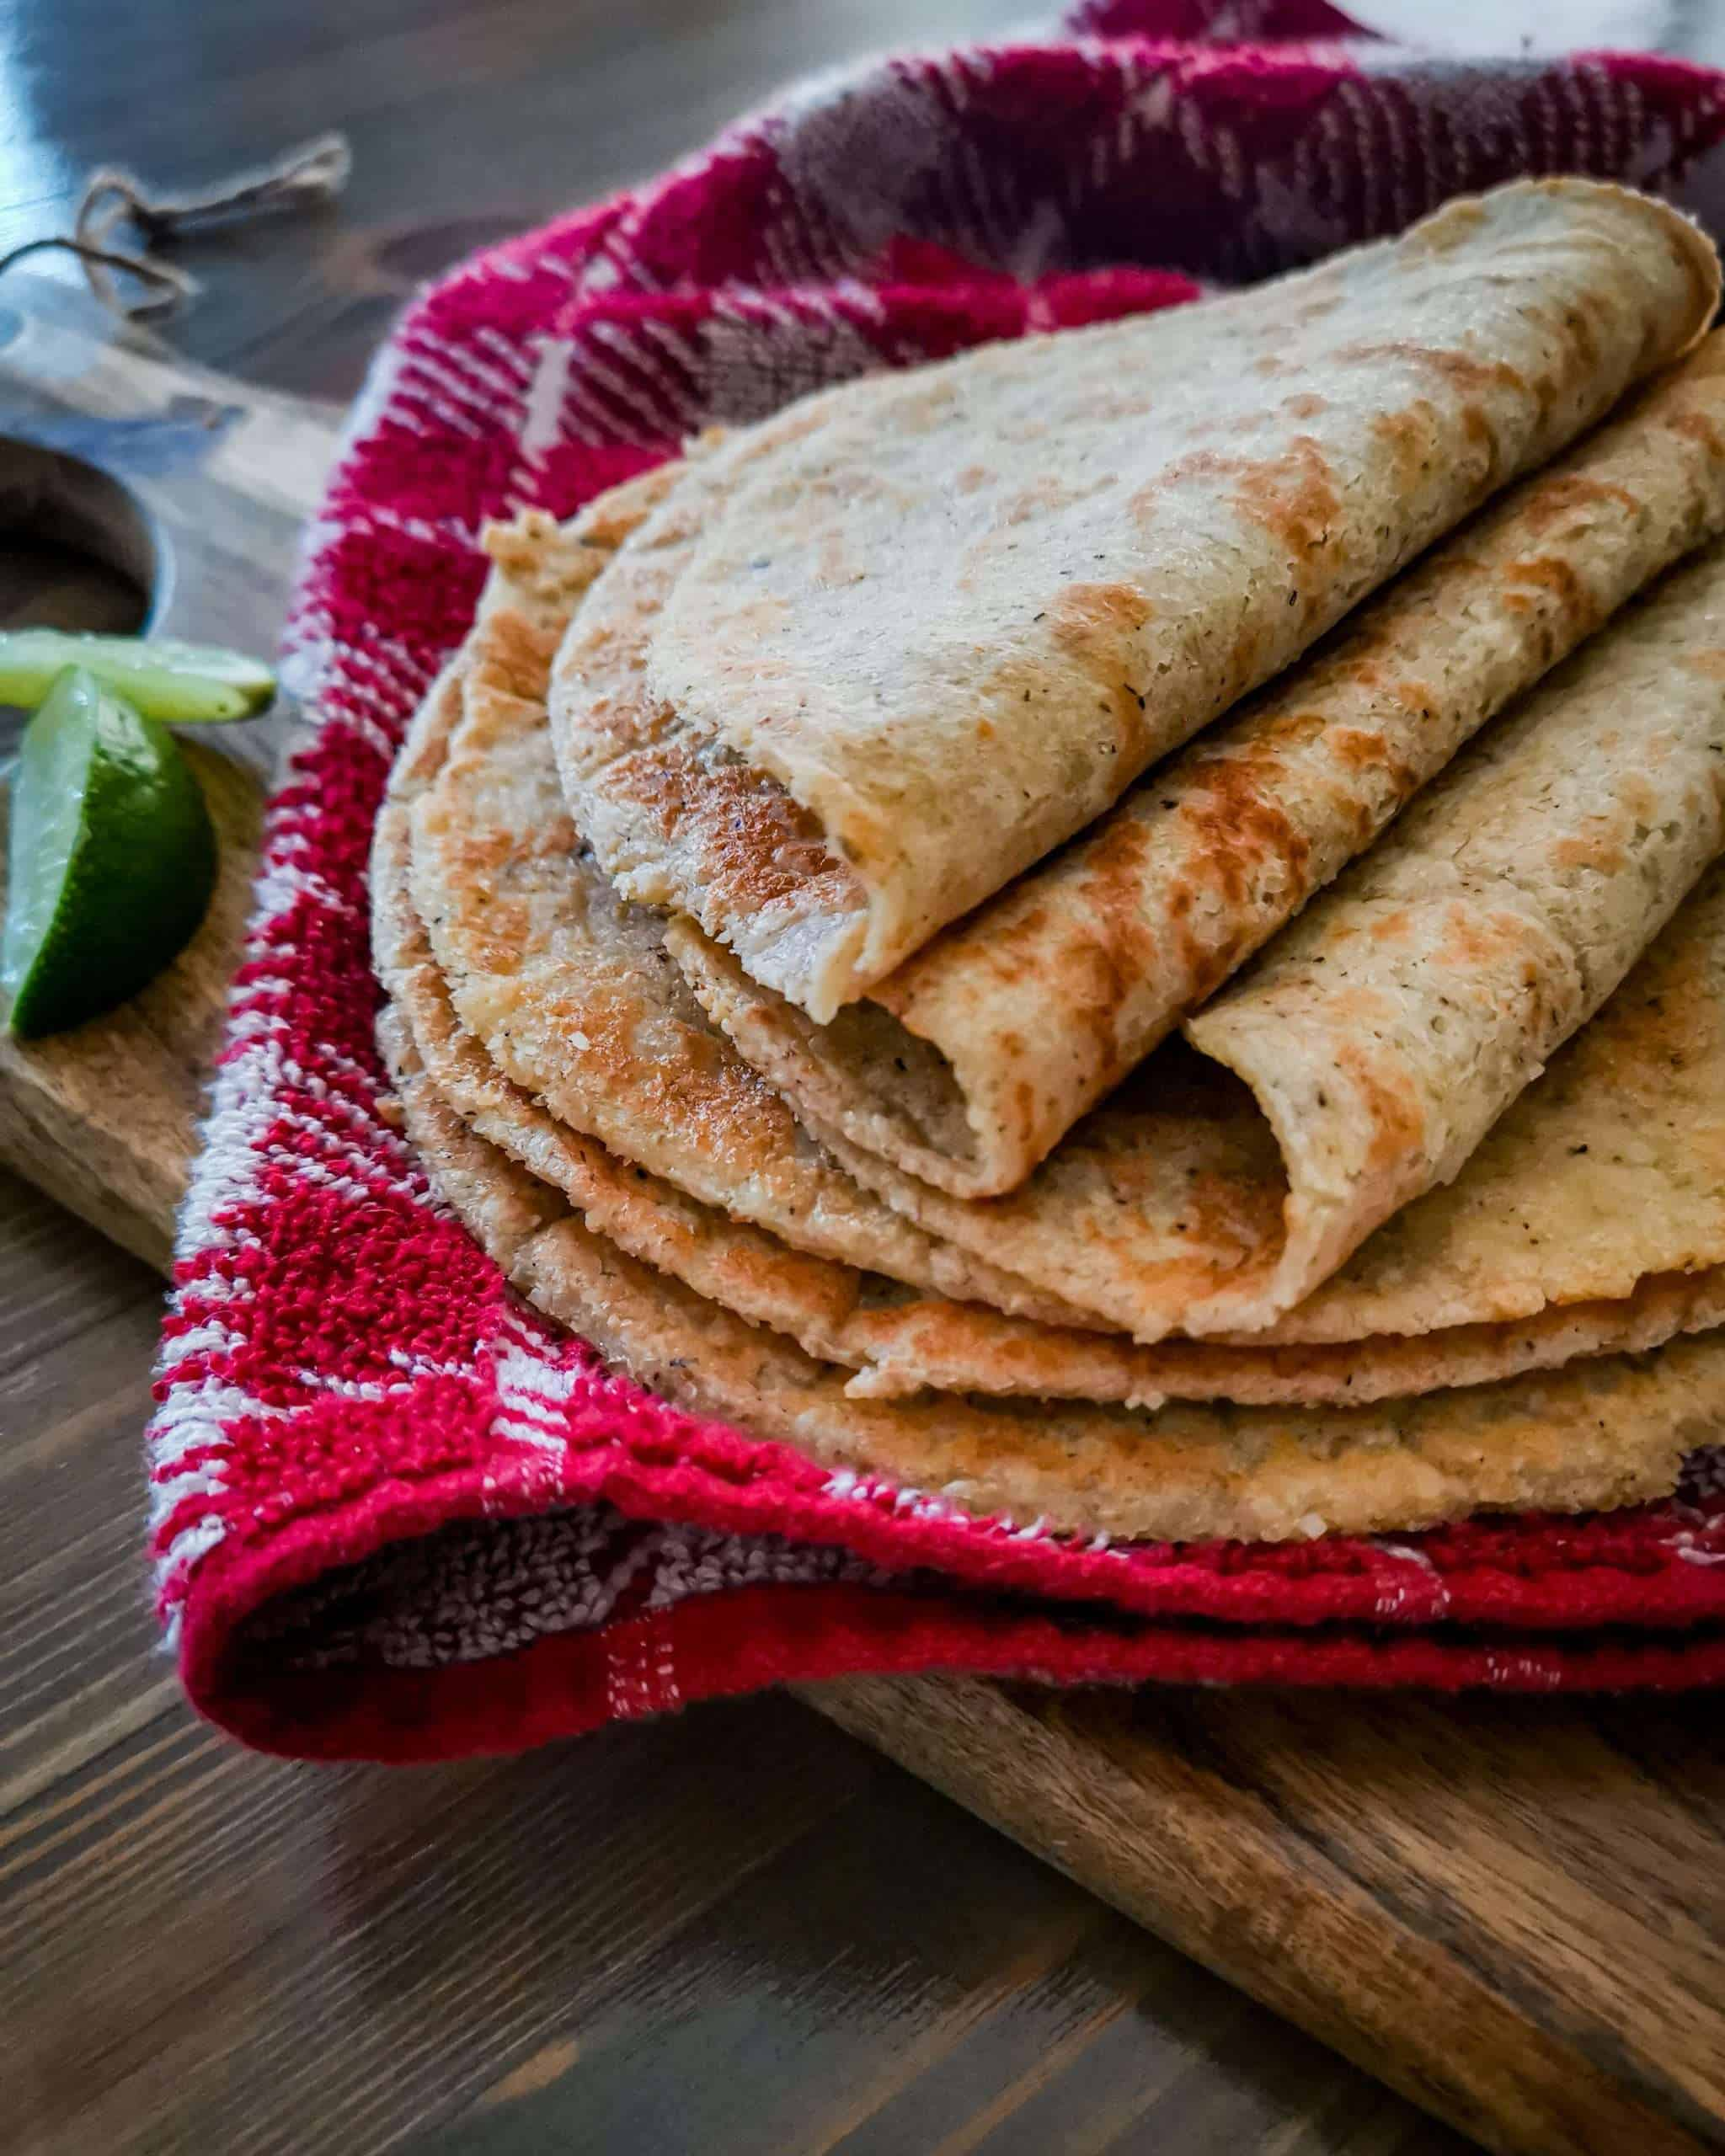 Homemade Keto tortillas folded